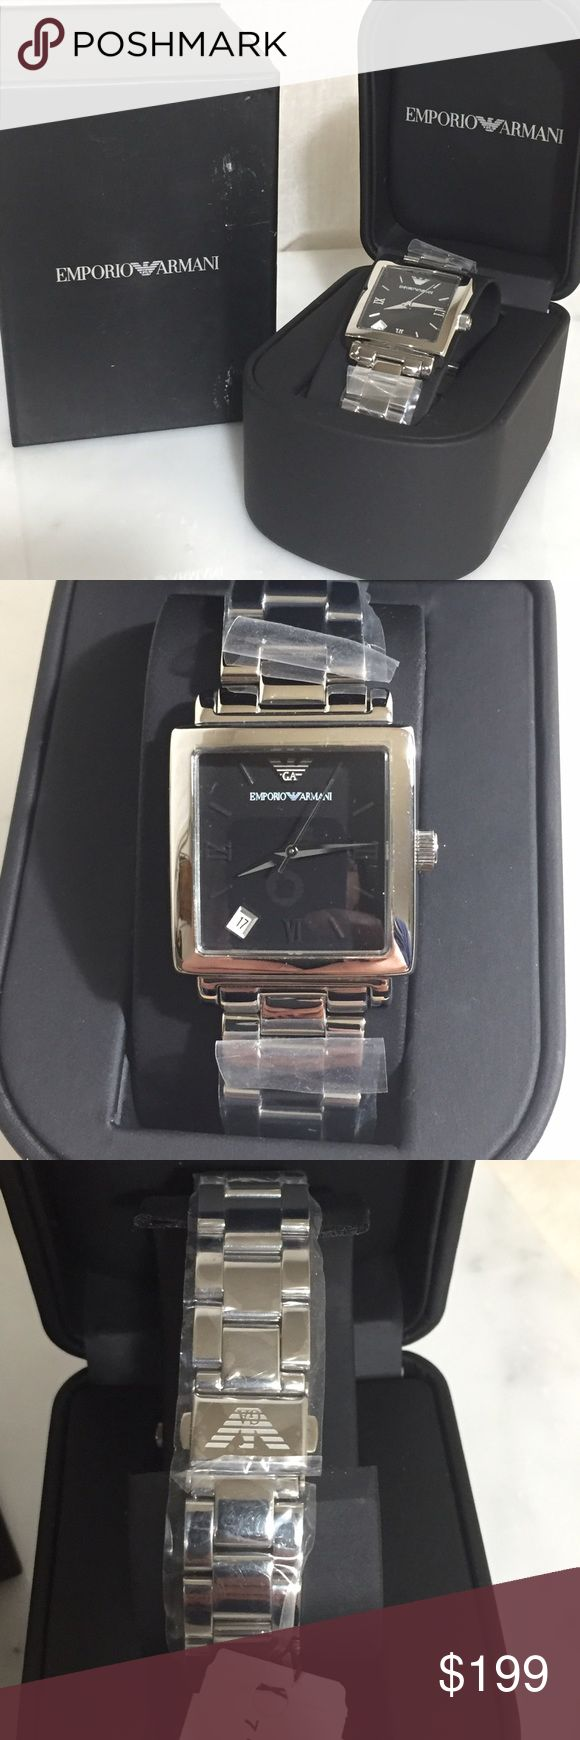 Emporia Armani Watch Model AR5303 Quartz movement Black face with silver tone hands and roman numbers at 3, 6, 9, stick at remaining numbers Analog date display at the 7 Stainless steel bracelet with push buttons clasp 50 meters water resistant Case is stainless steel. Watch width 3.2cm Face height 2.4 cm Size is unisex Emporio Armani Accessories Watches